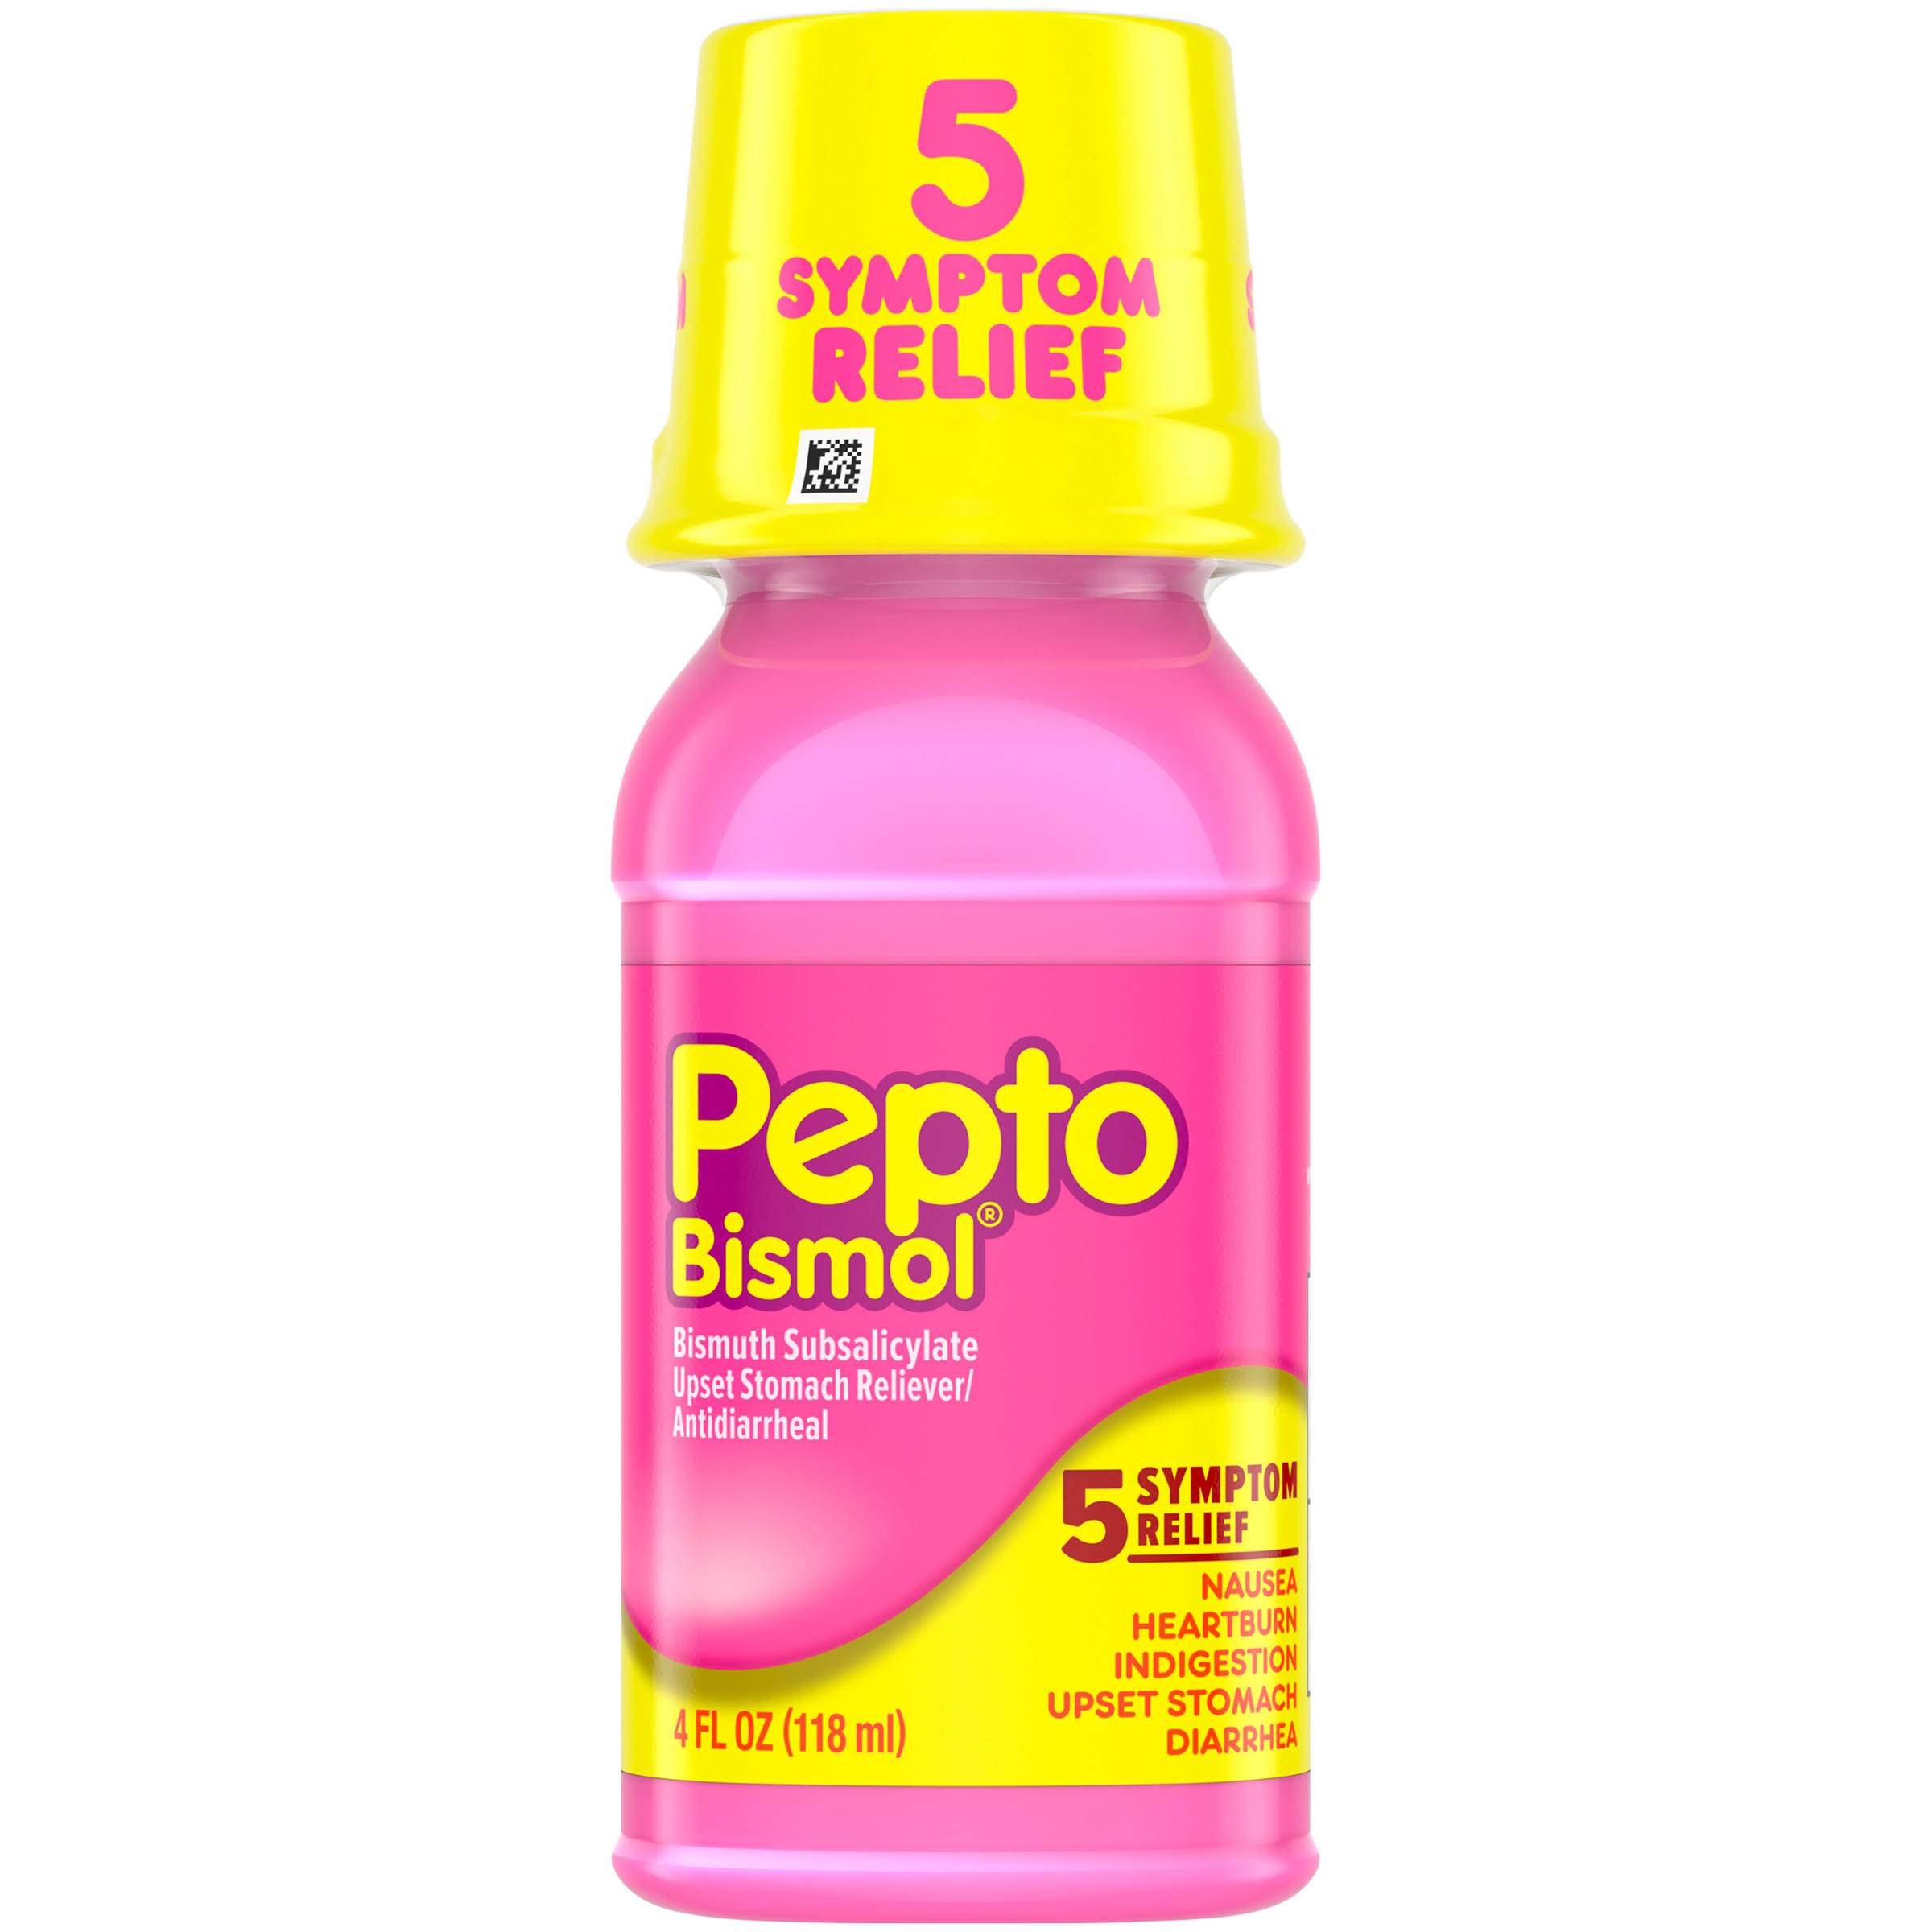 Pepto-Bismol Bismuth Subsalicylate Upset Stomach Reliever & Antidiarrheal - 4oz